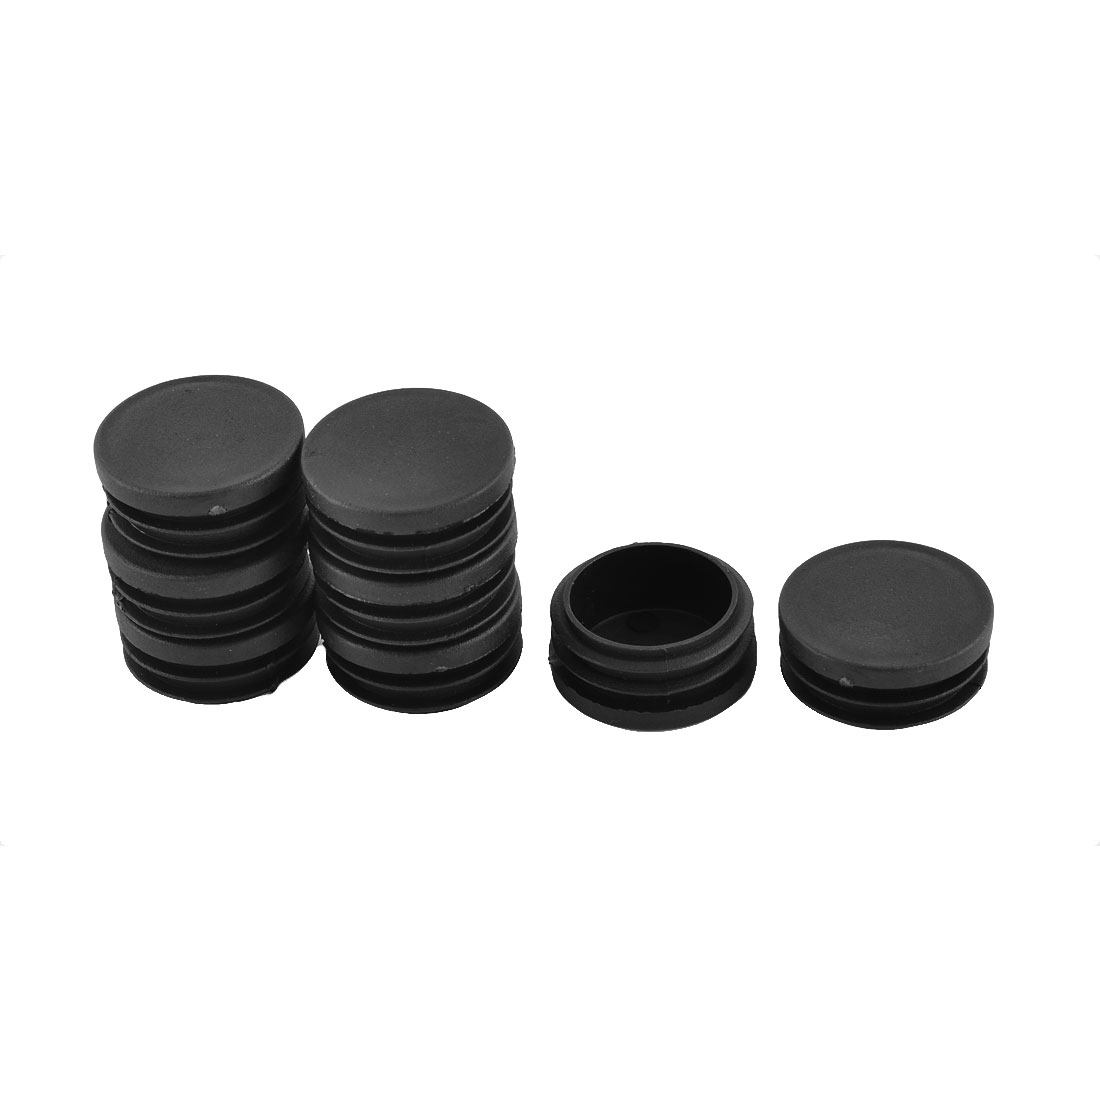 Furniture Legs Plastic Round Blanking End Caps Tube Insert Black 38mm Dia 8pcs